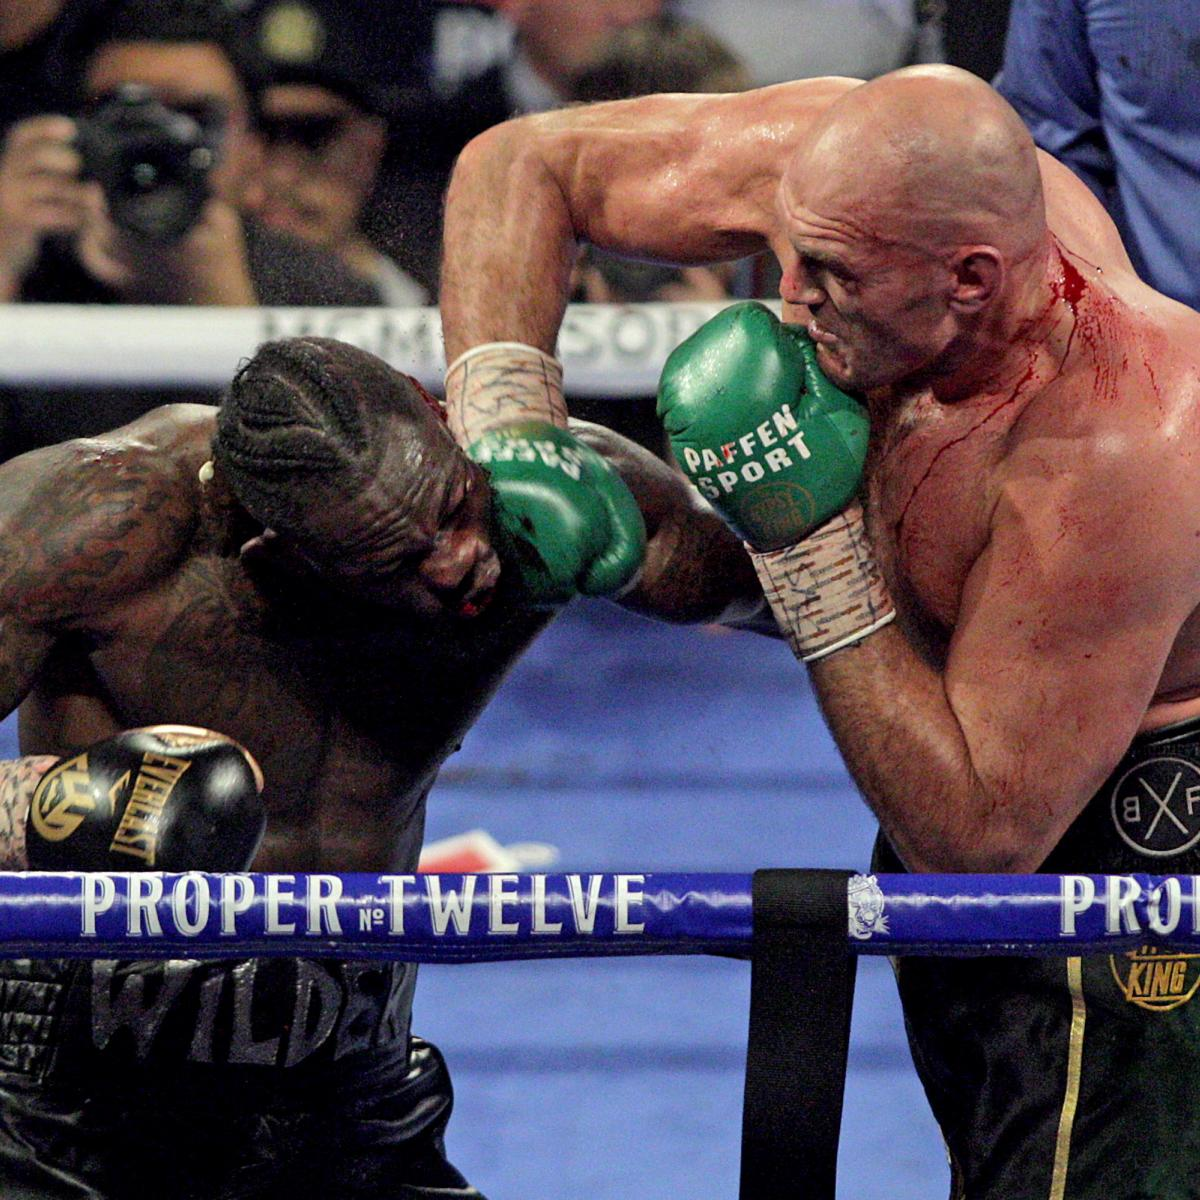 Deontay Wilder Taken to Hospital After TKO Loss to Tyson Fury, Misses Presser